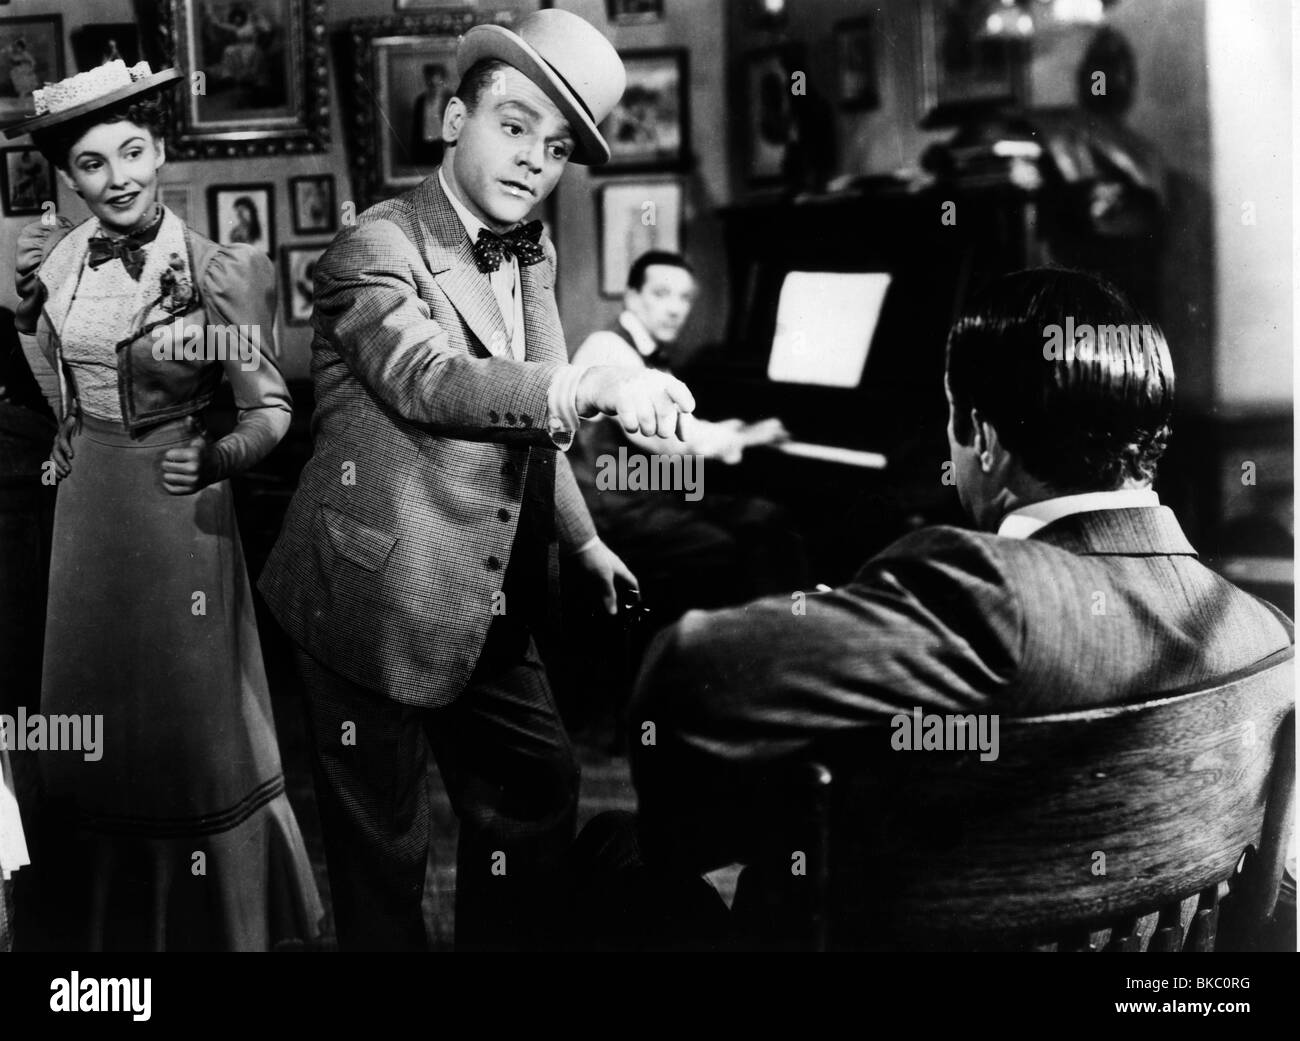 Yankee Doodle dandy(1942) James Cagney ydd 002p Immagini Stock